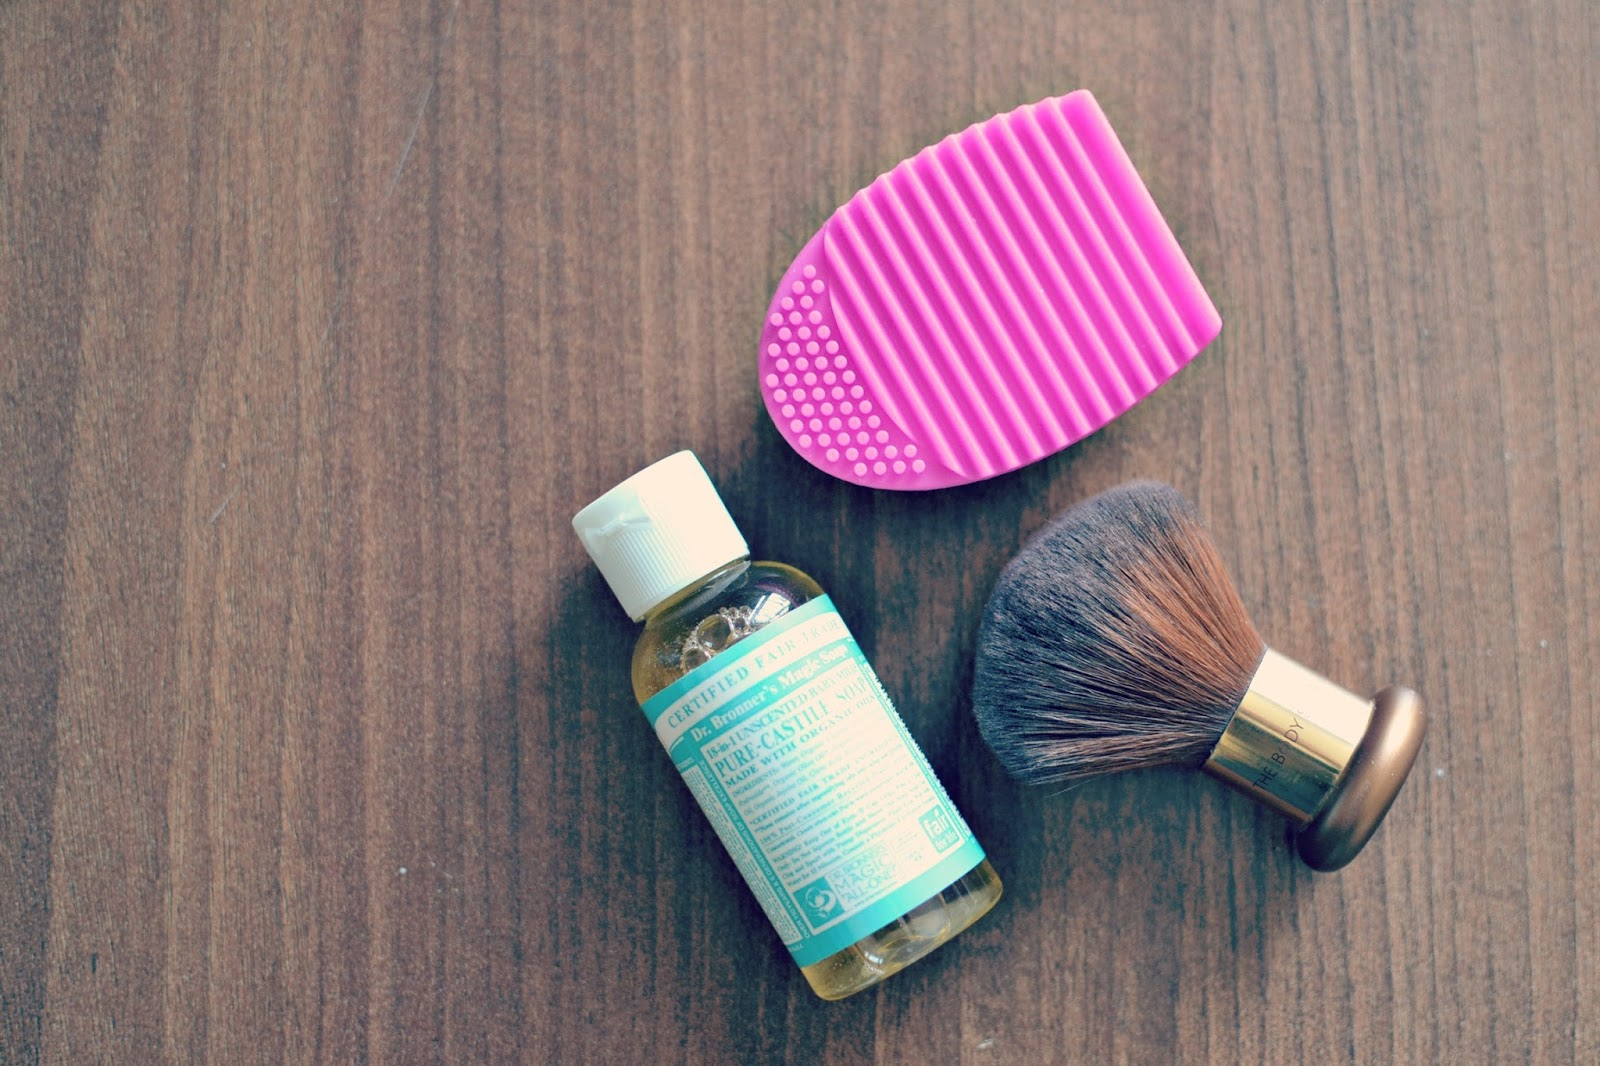 Primark brush cleaner tool review